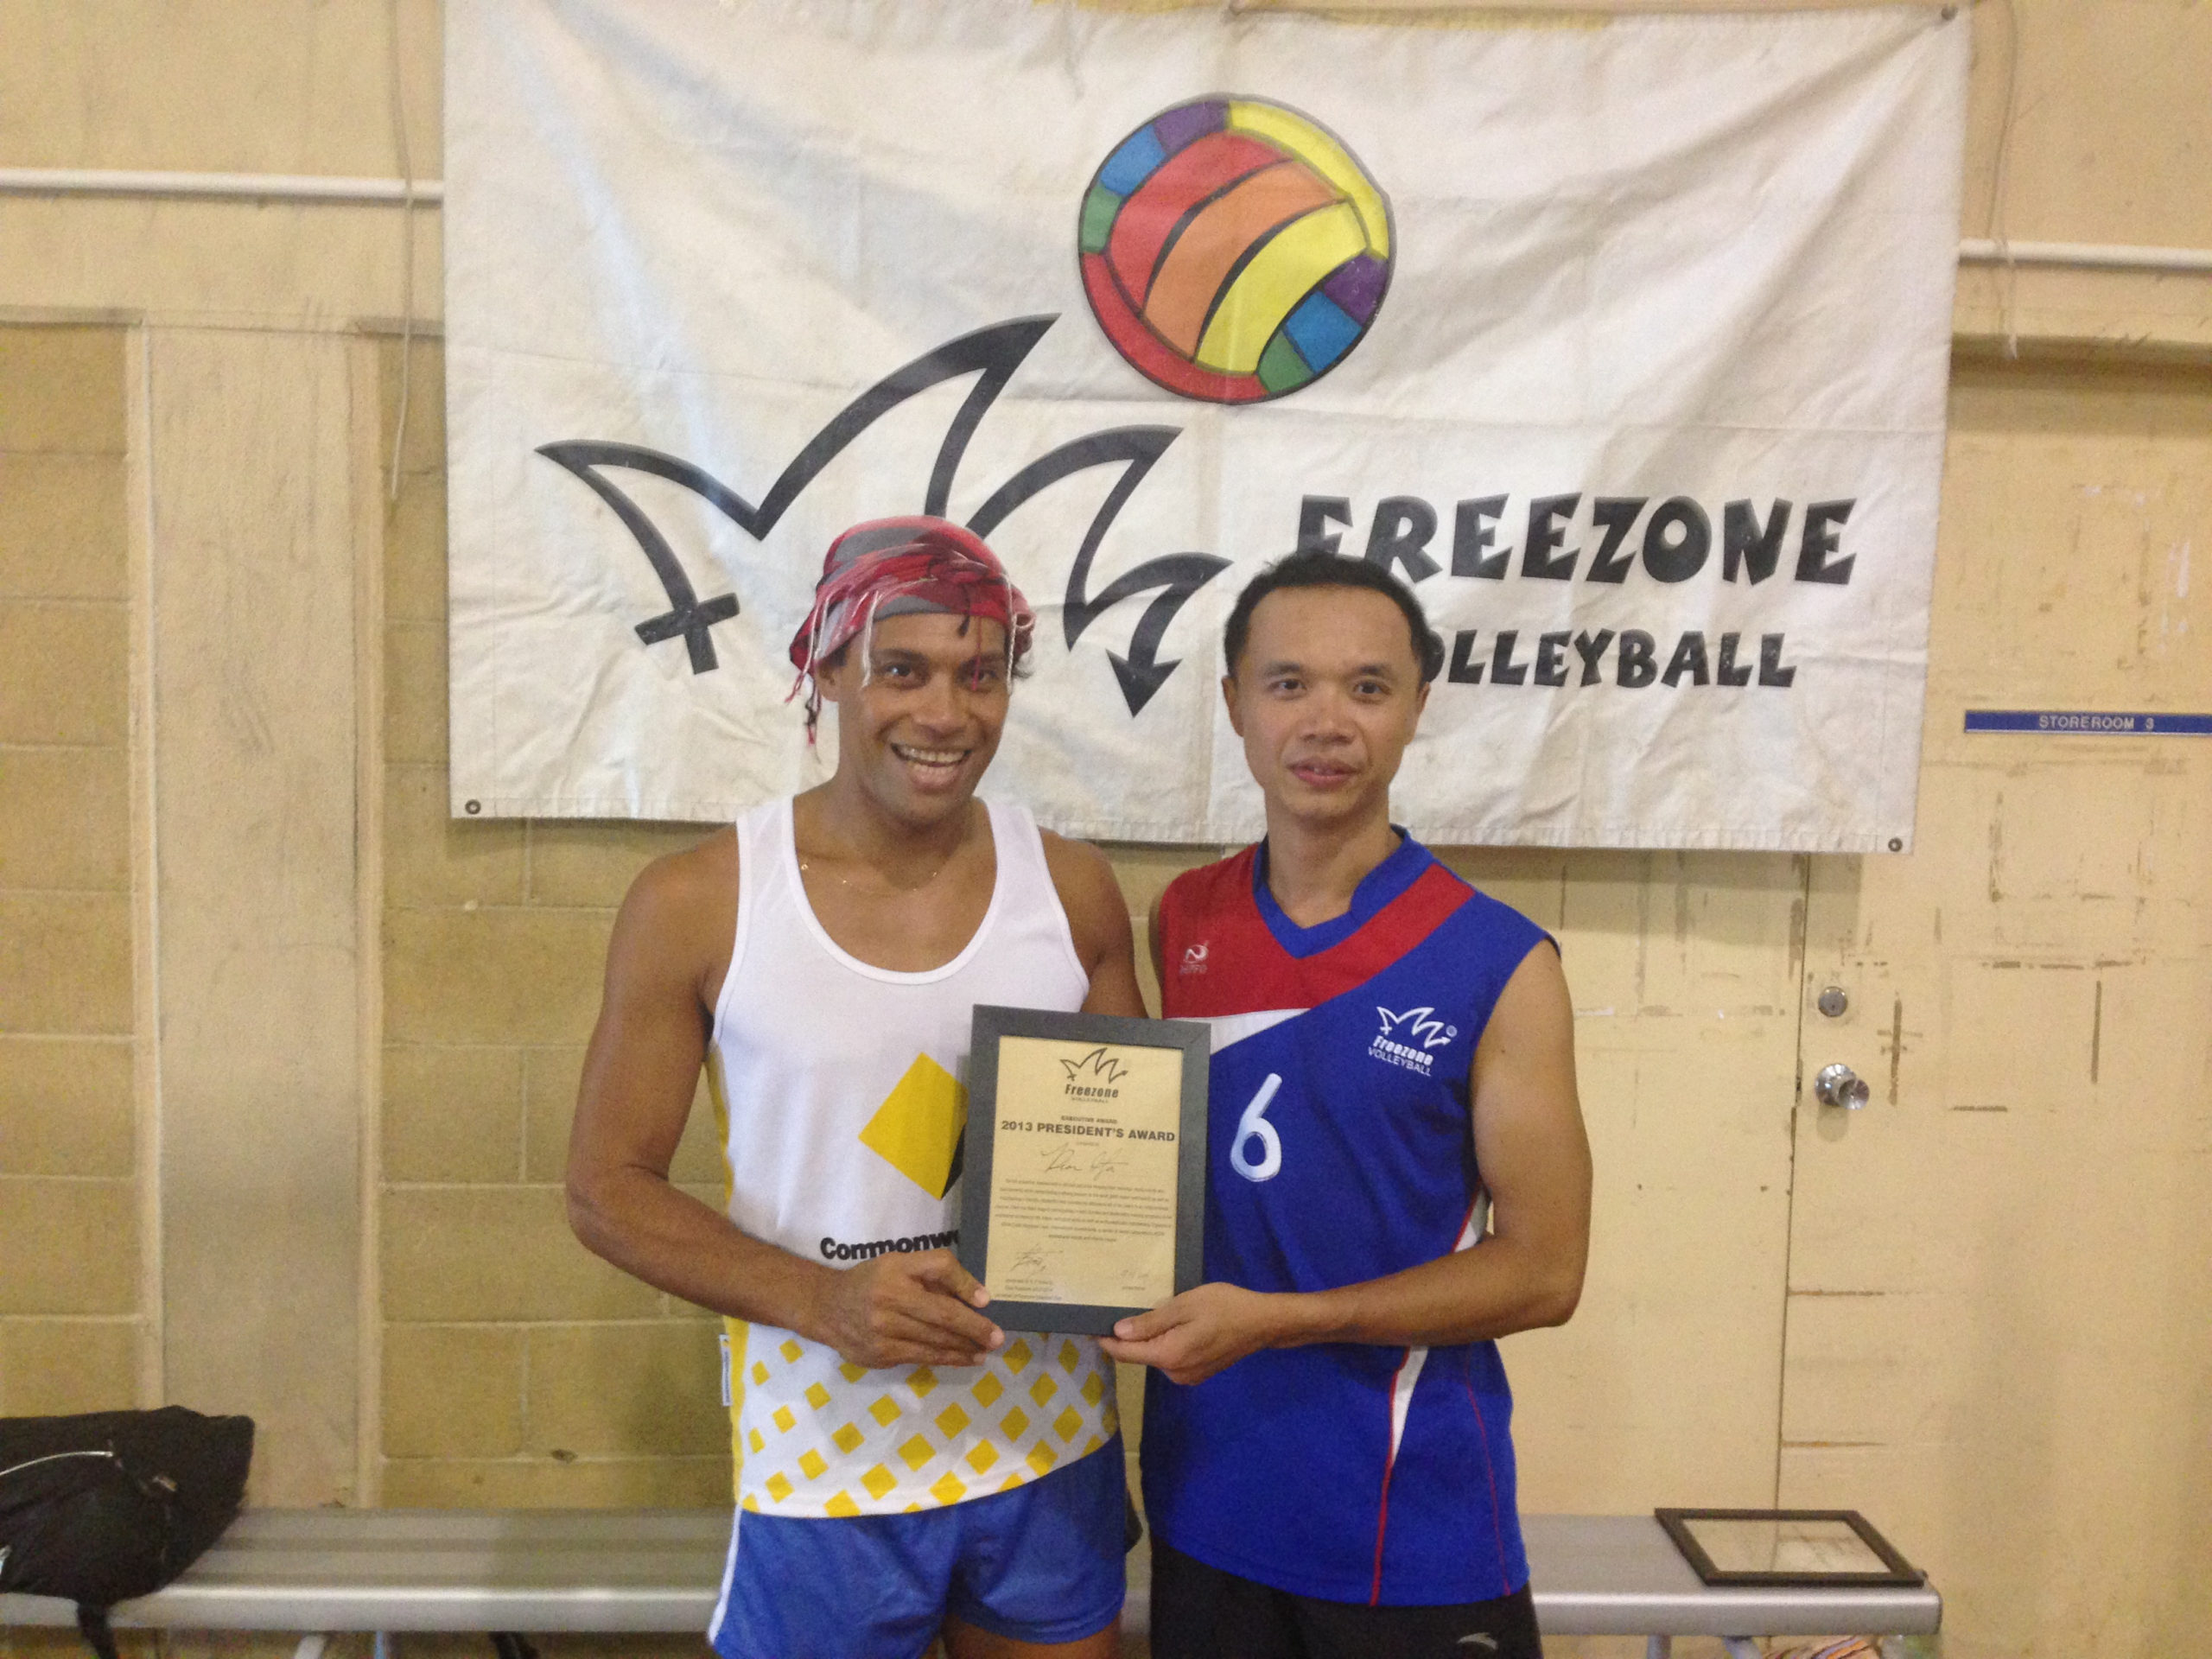 Freezone Awards For 2013  Freezone Volleyball Club throughout Free Volleyball Tournament Certificate